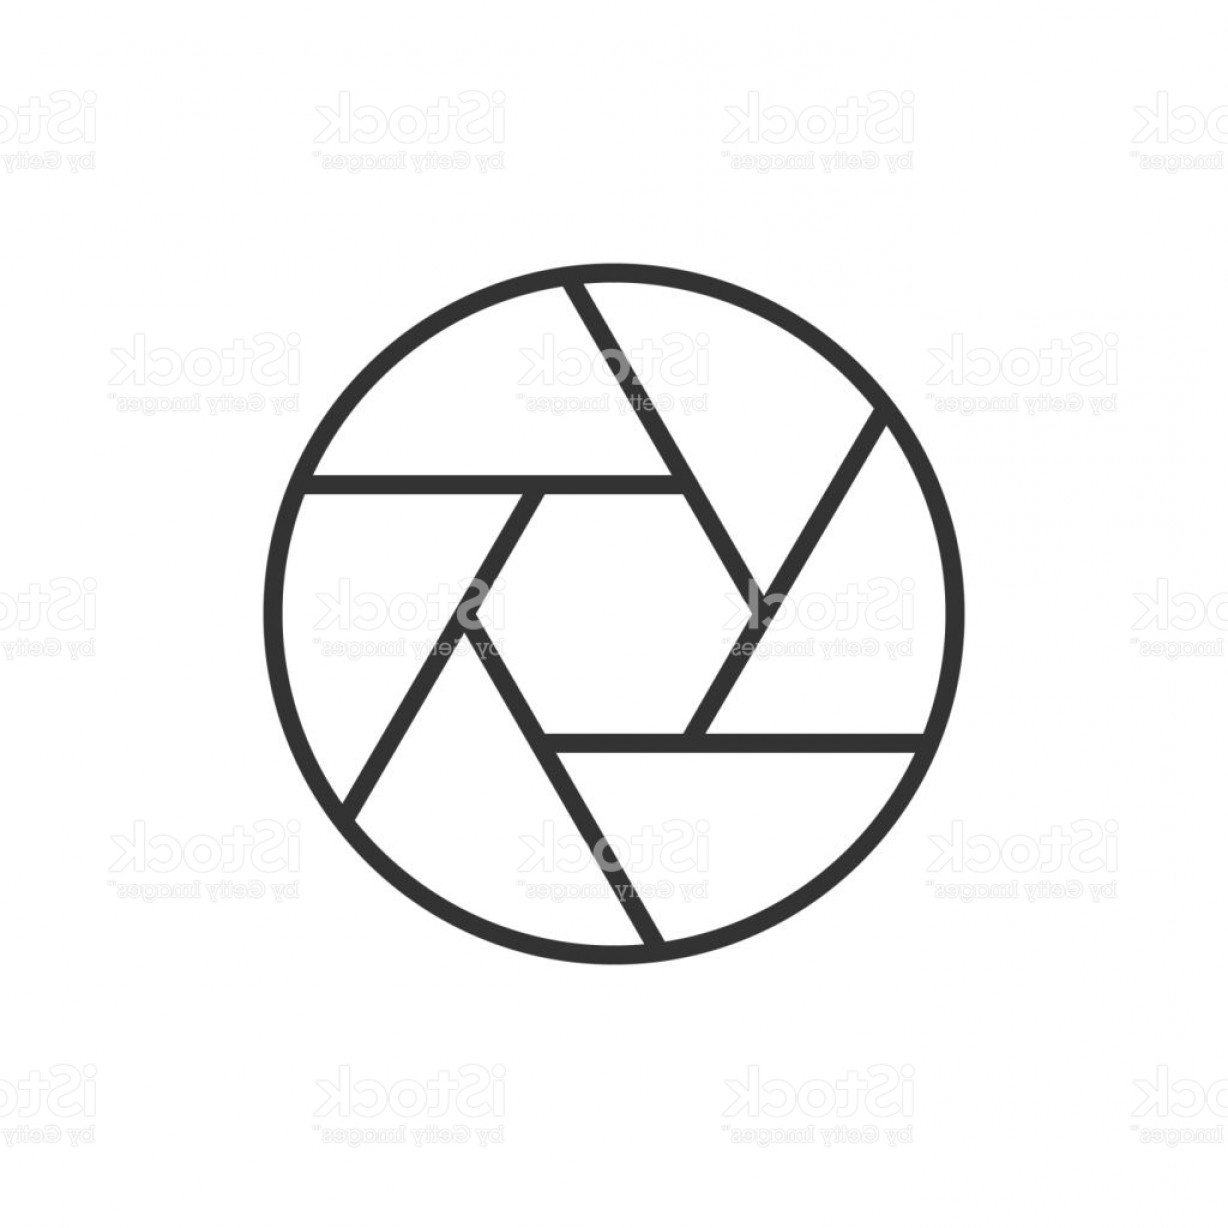 Camera Outline Vector Graphic: Camera Objective Outline Icon Gm